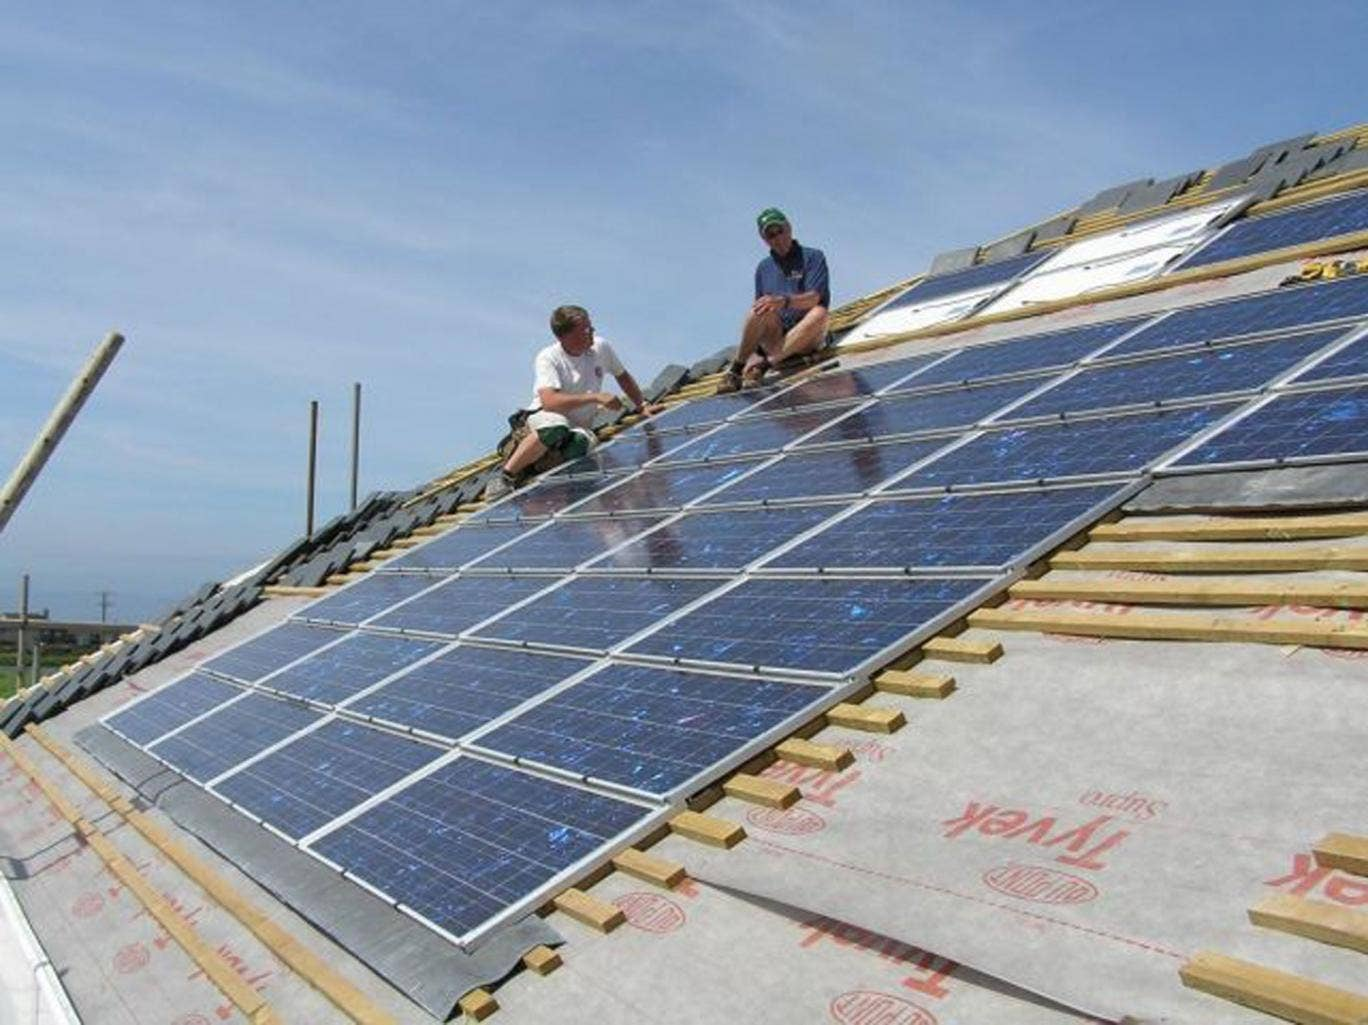 Plymouth residents are being encouraged to buy shares in community energy projects